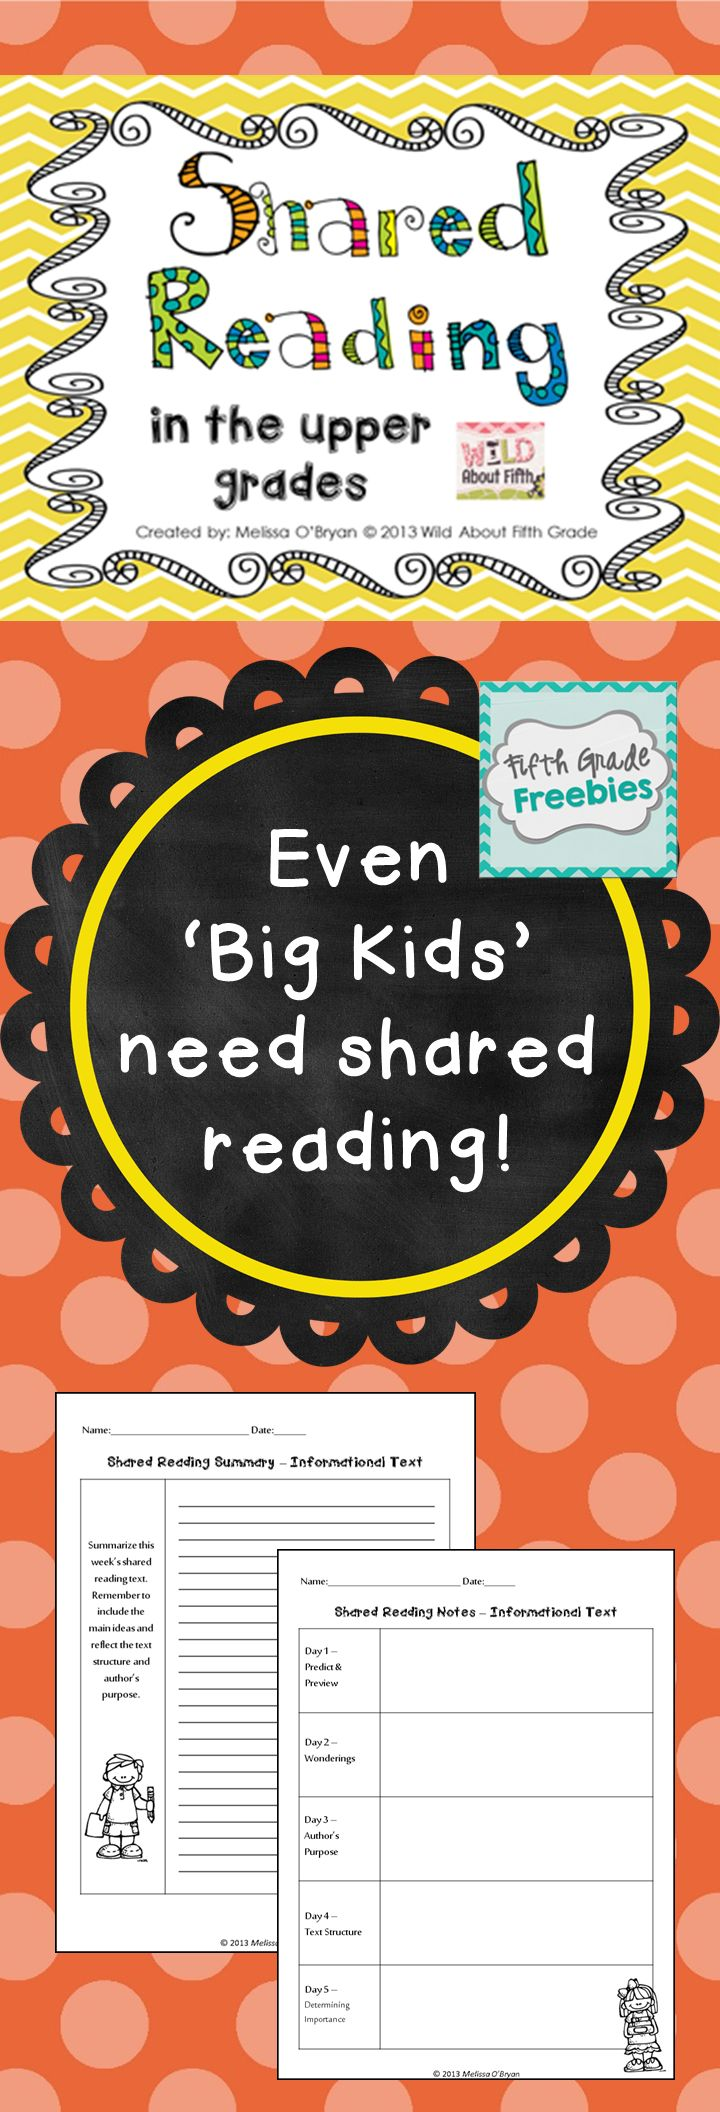 buy cheap runners online Blog Post   Fifth Grade FREEBIES   Even big kids need shared reading  It  39 s the perfect way to model practice comprehension strategies  summarizing and build oral fluency  The best part is that it only takes 10 15 minutes a day   wildaboutfifthgrade  fifthgradefreebies